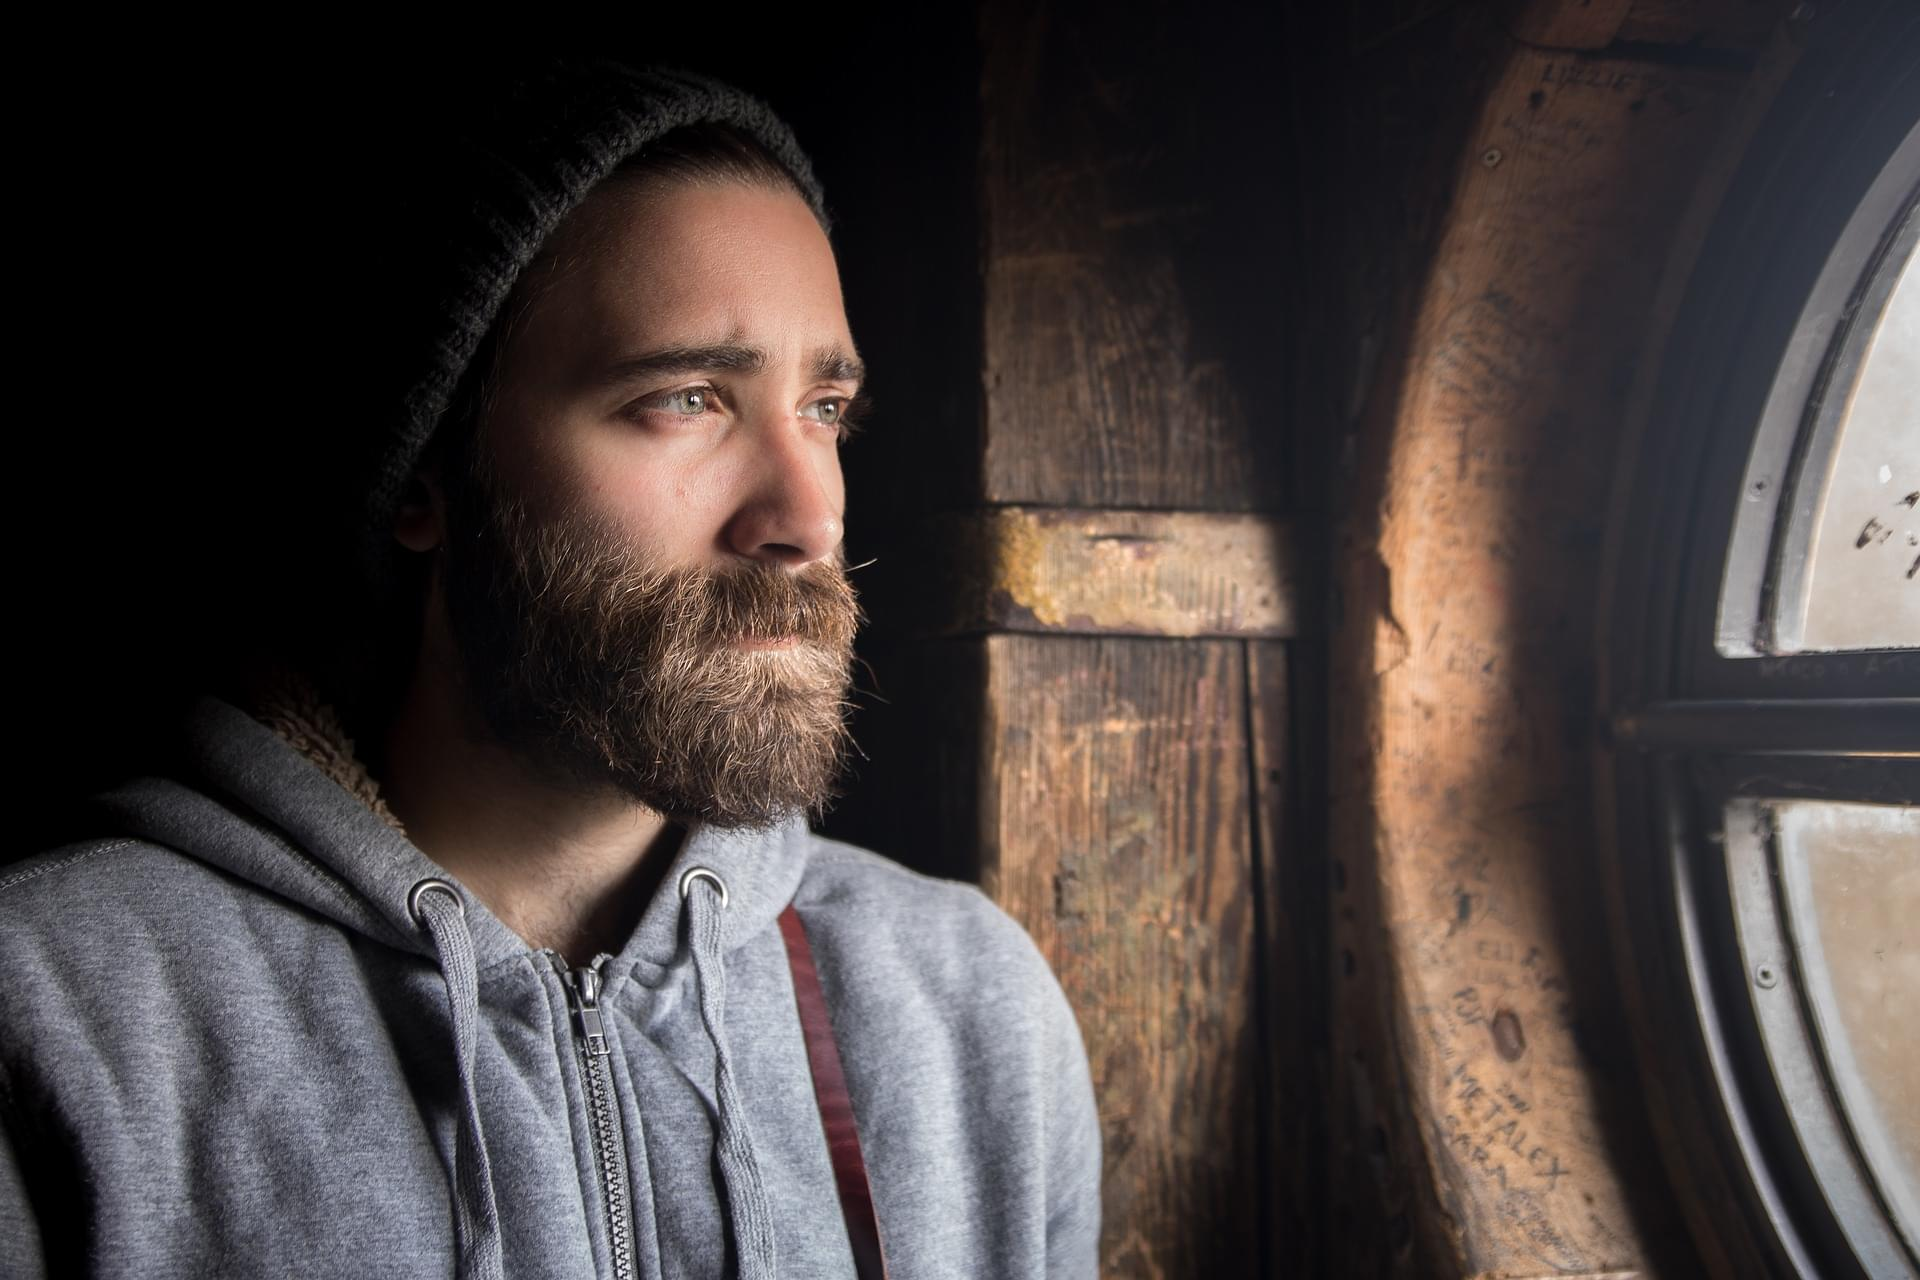 Men's Beards Hold More Germs Than Dog Fur According To New Study